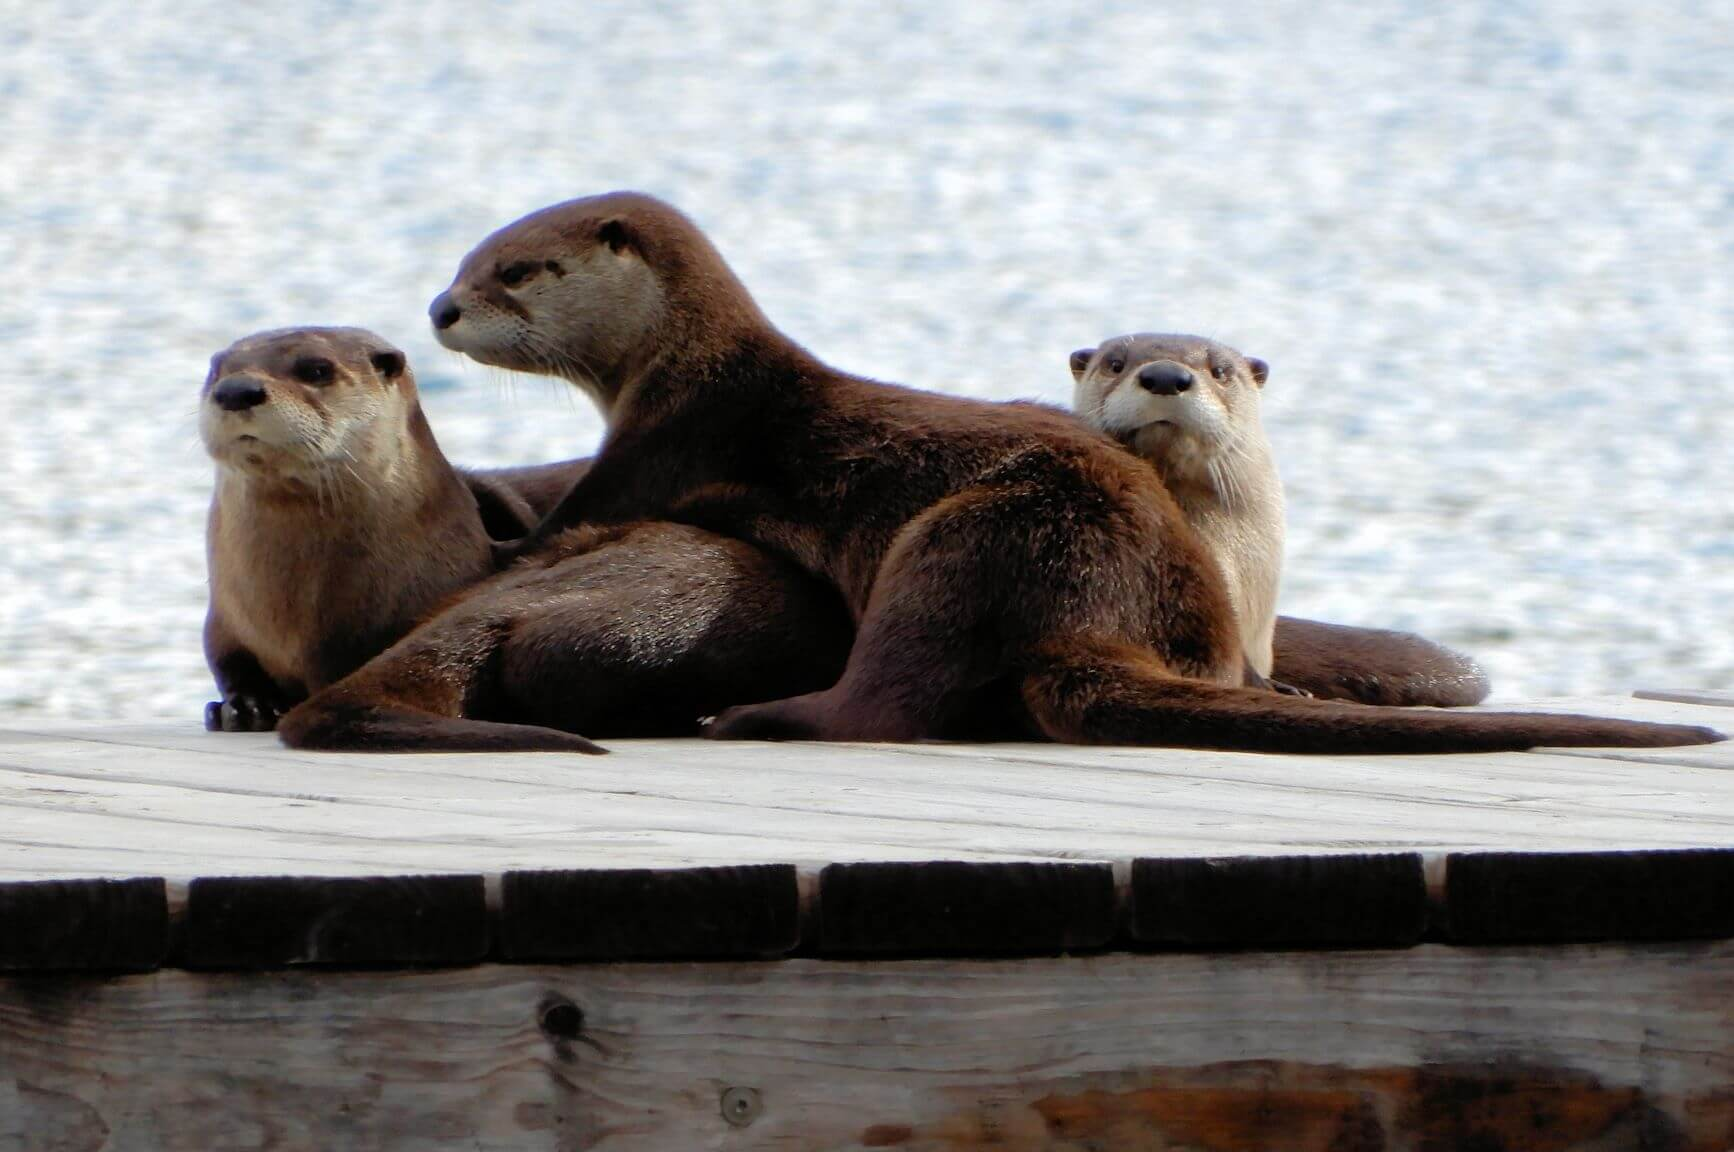 Three otters sitting on a dock.